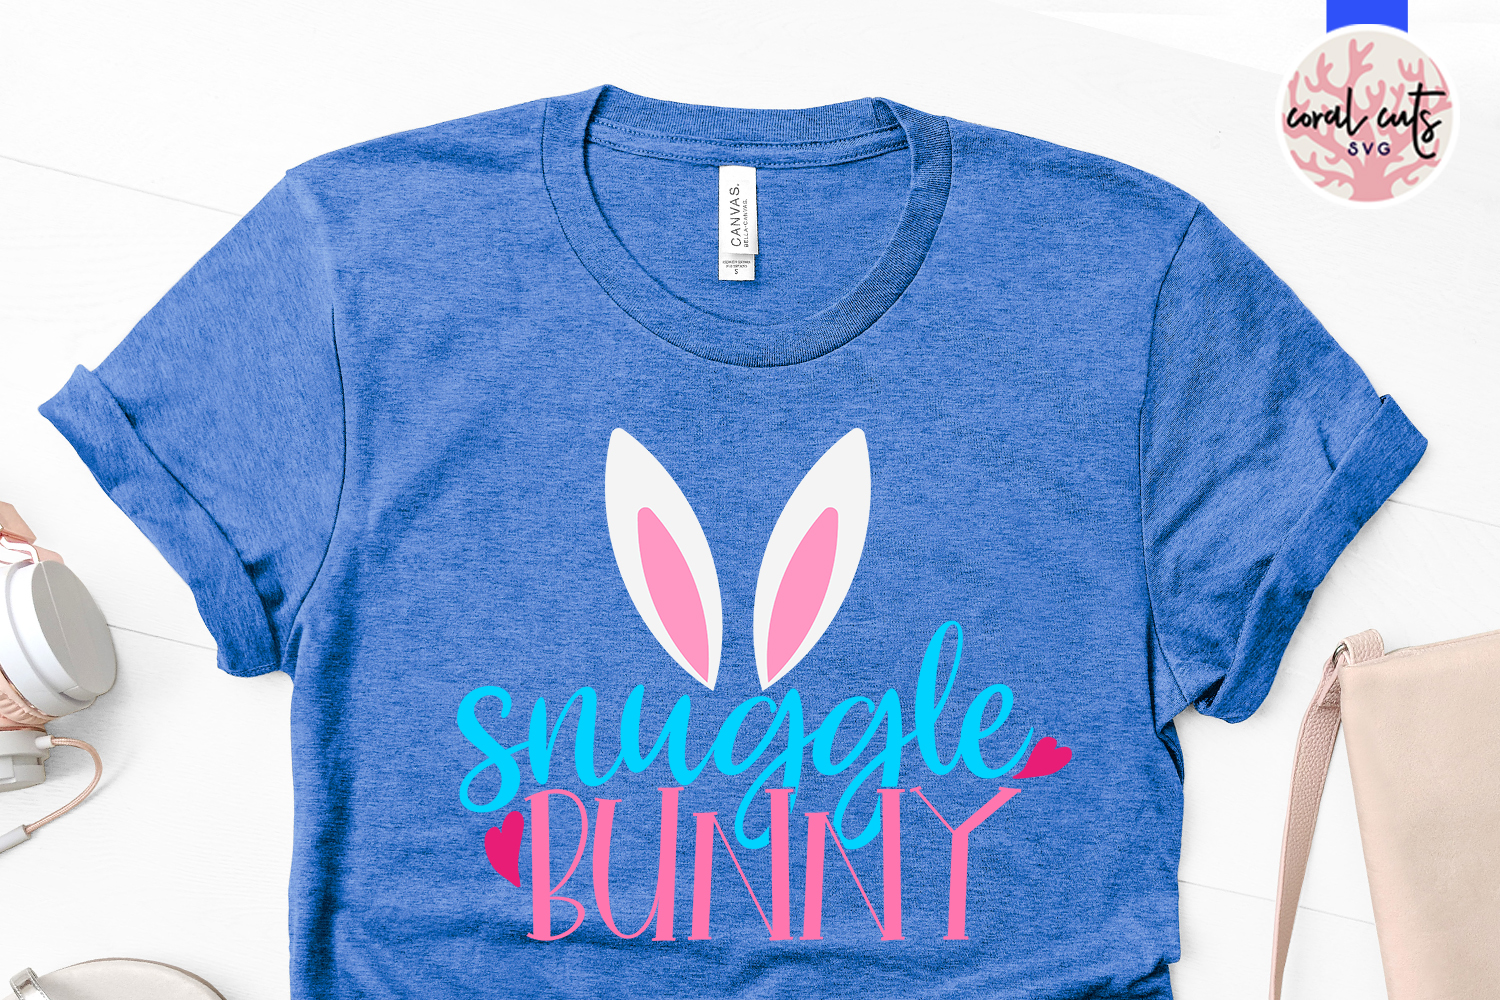 Snuggle bunny - Easter SVG EPS DXF PNG Cutting File example image 2